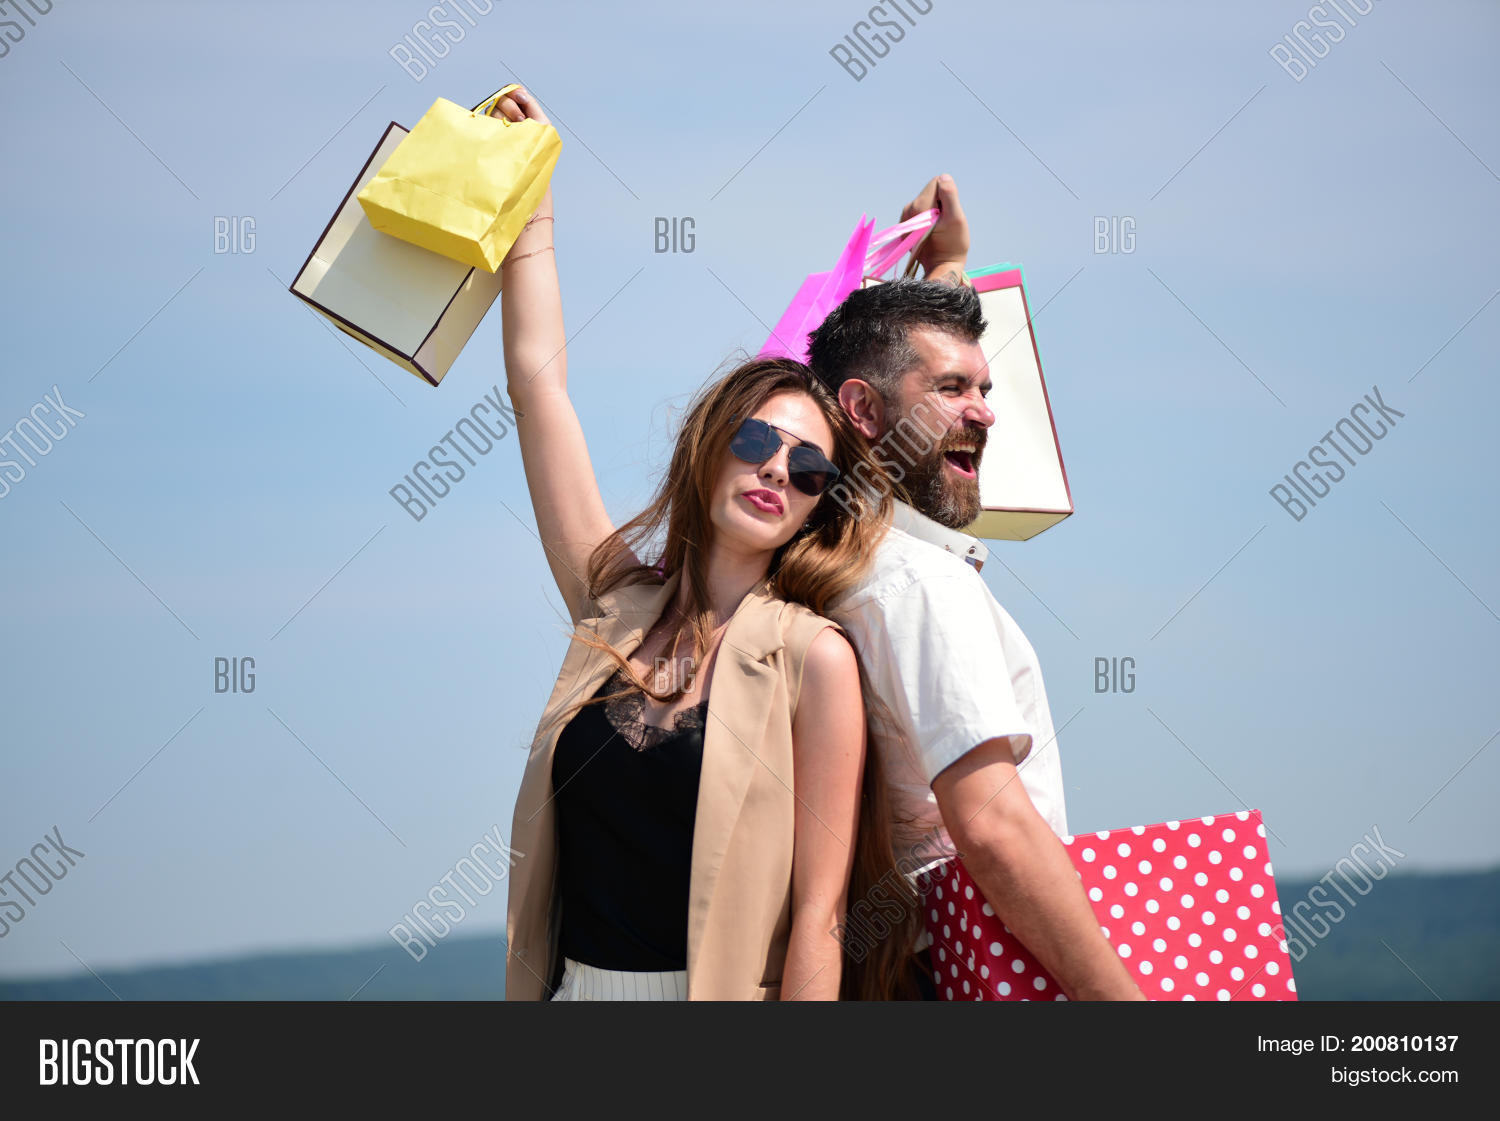 Sexy Girl Guy Happy Image & Photo (Free Trial) | Bigstock